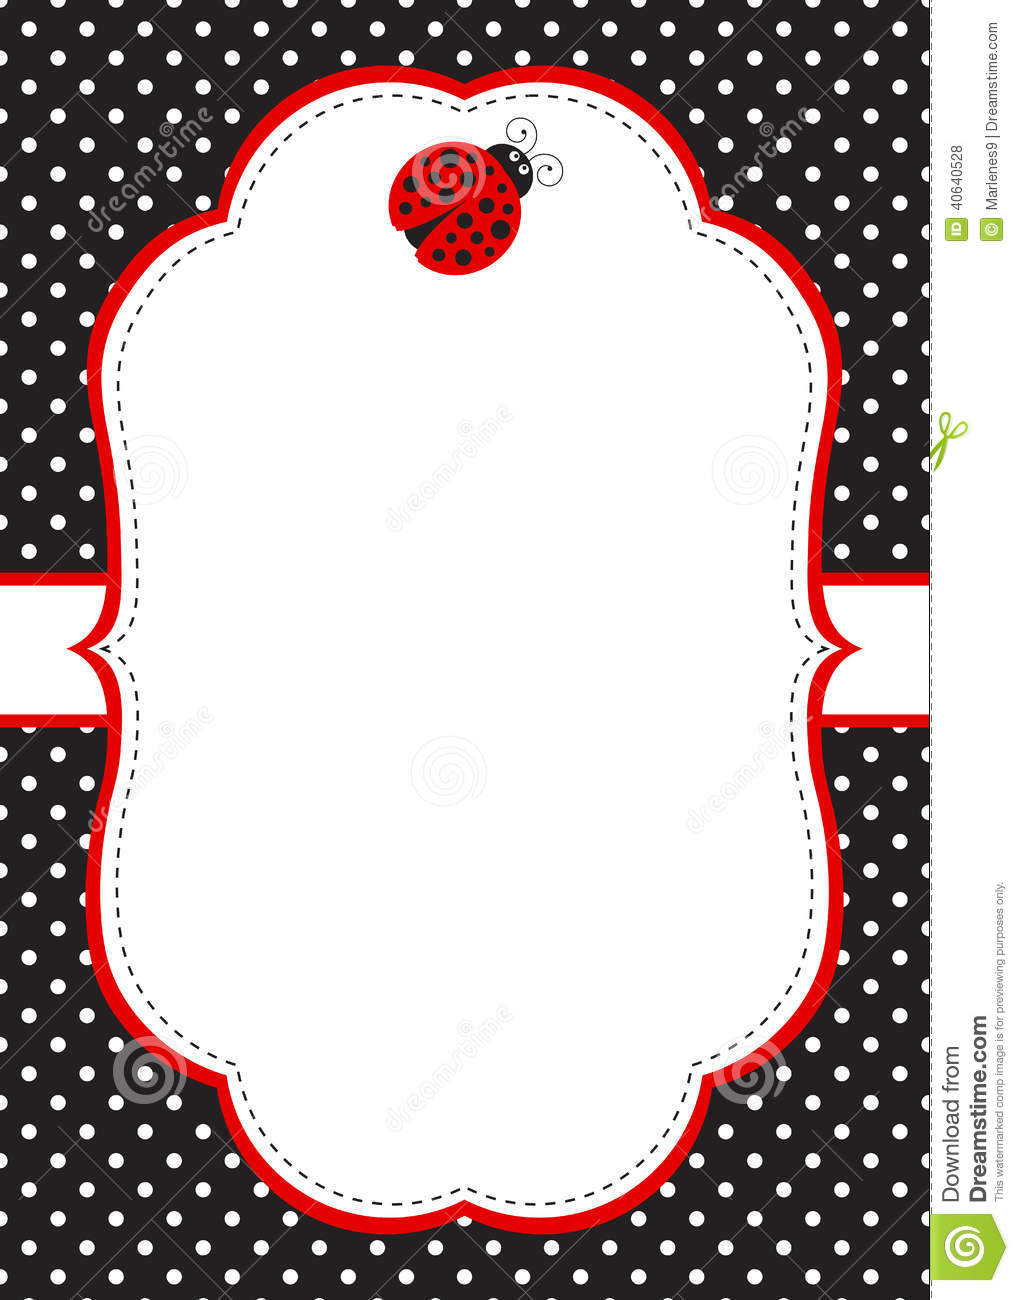 Polka dot invitation card template with ladybug.